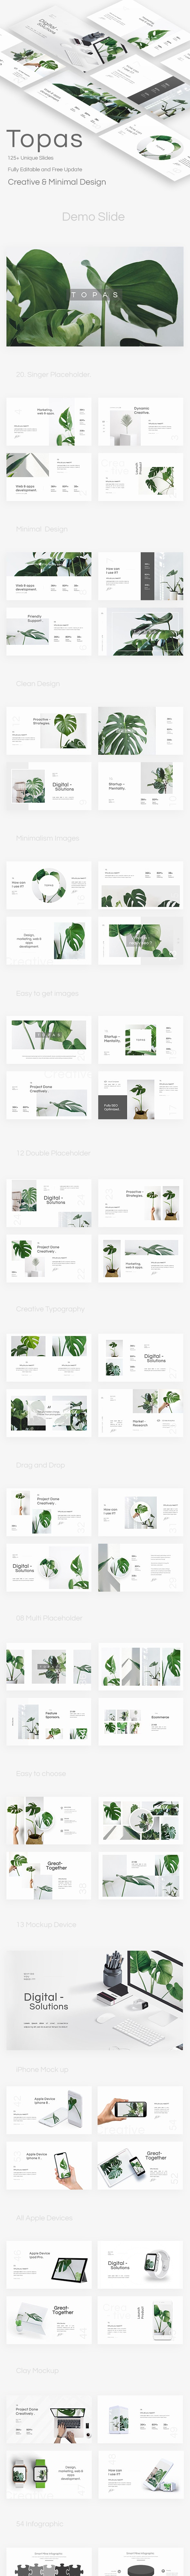 Topas Minimal Project Powerpoint Template - Creative PowerPoint Templates